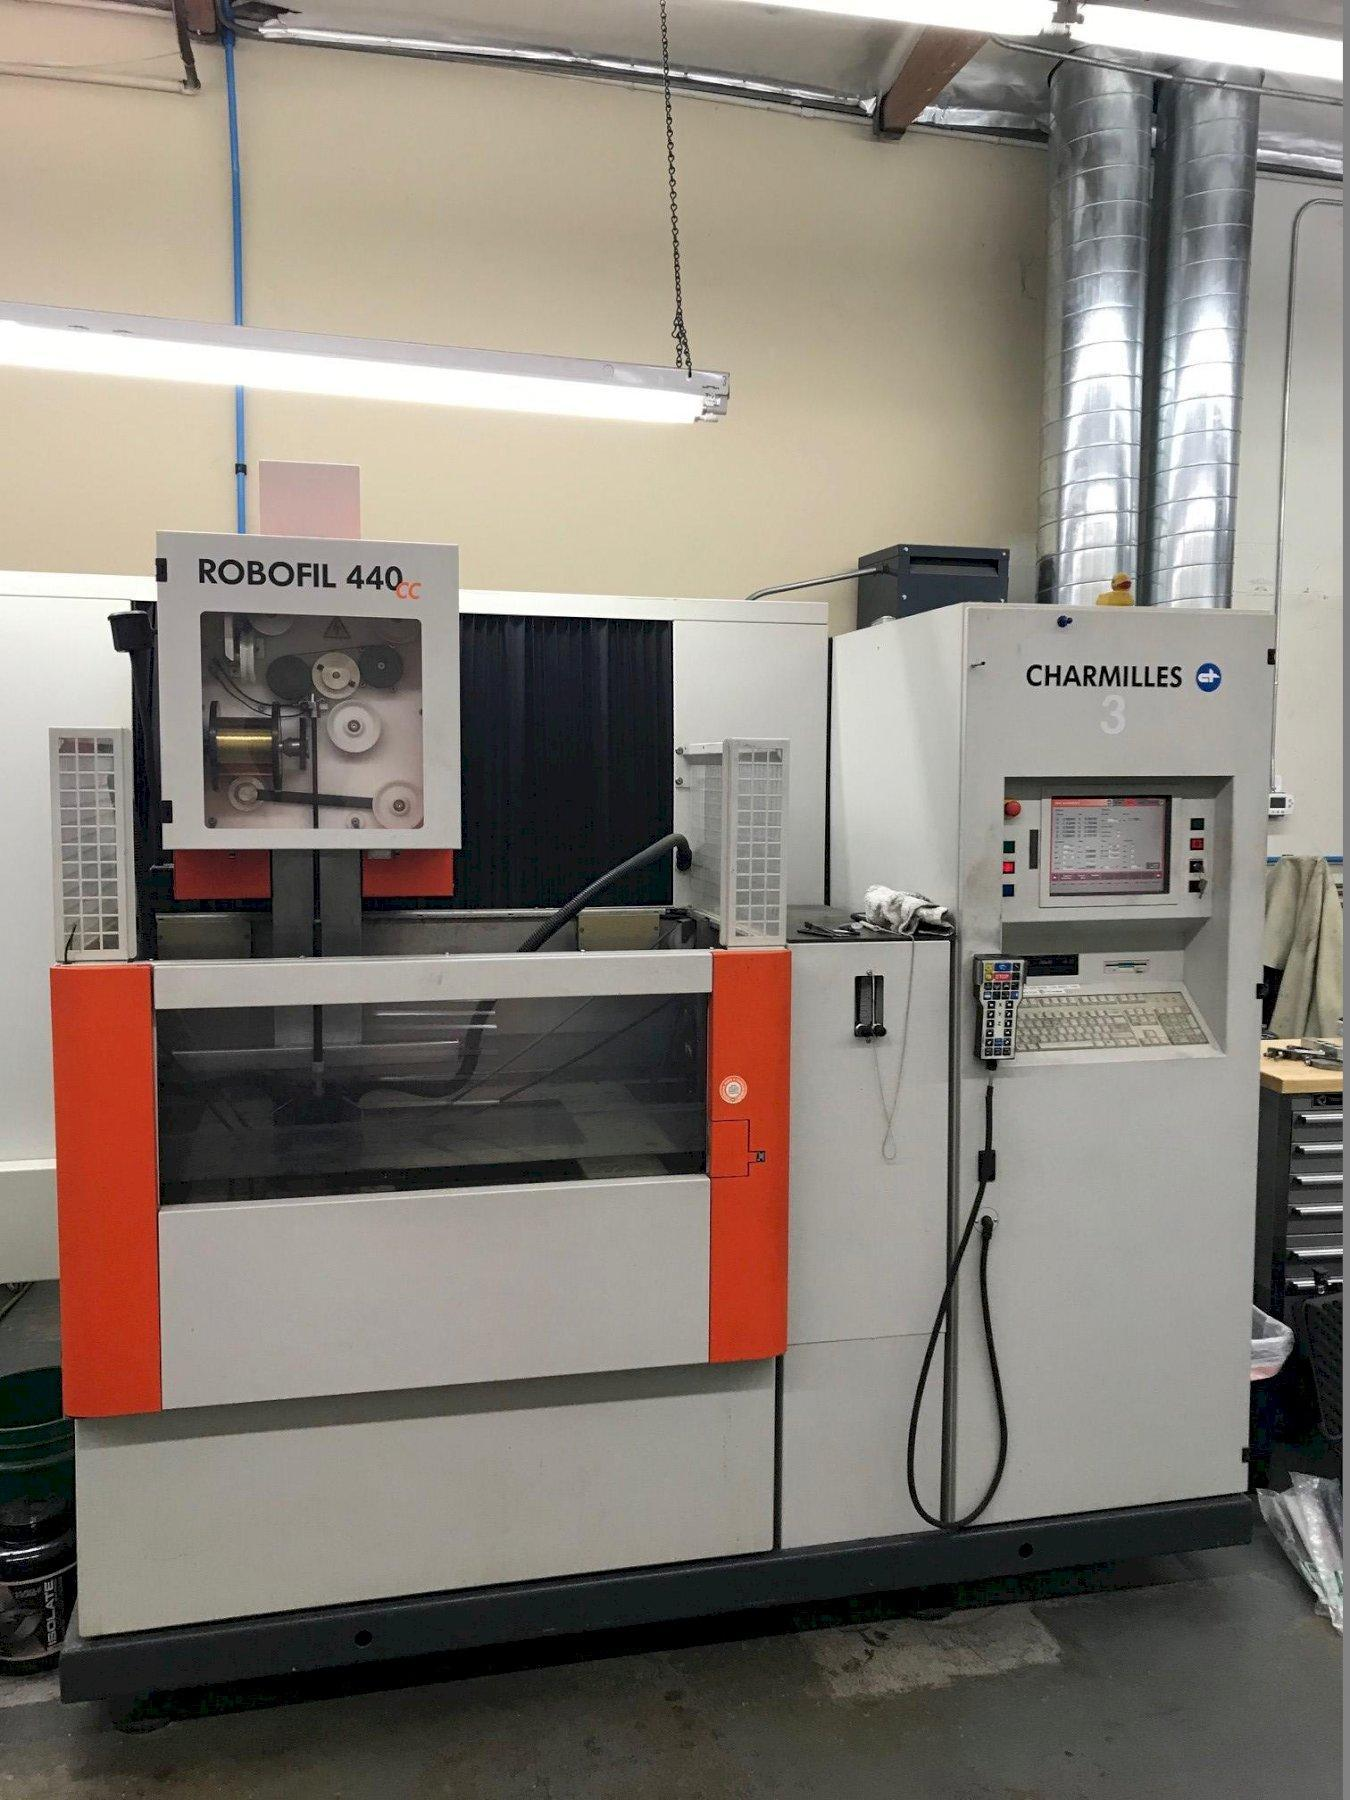 Charmilles Robofil 440cc Wire EDM 2005 with: Auto Threading, Submerged Cutting, and Glass Scales.